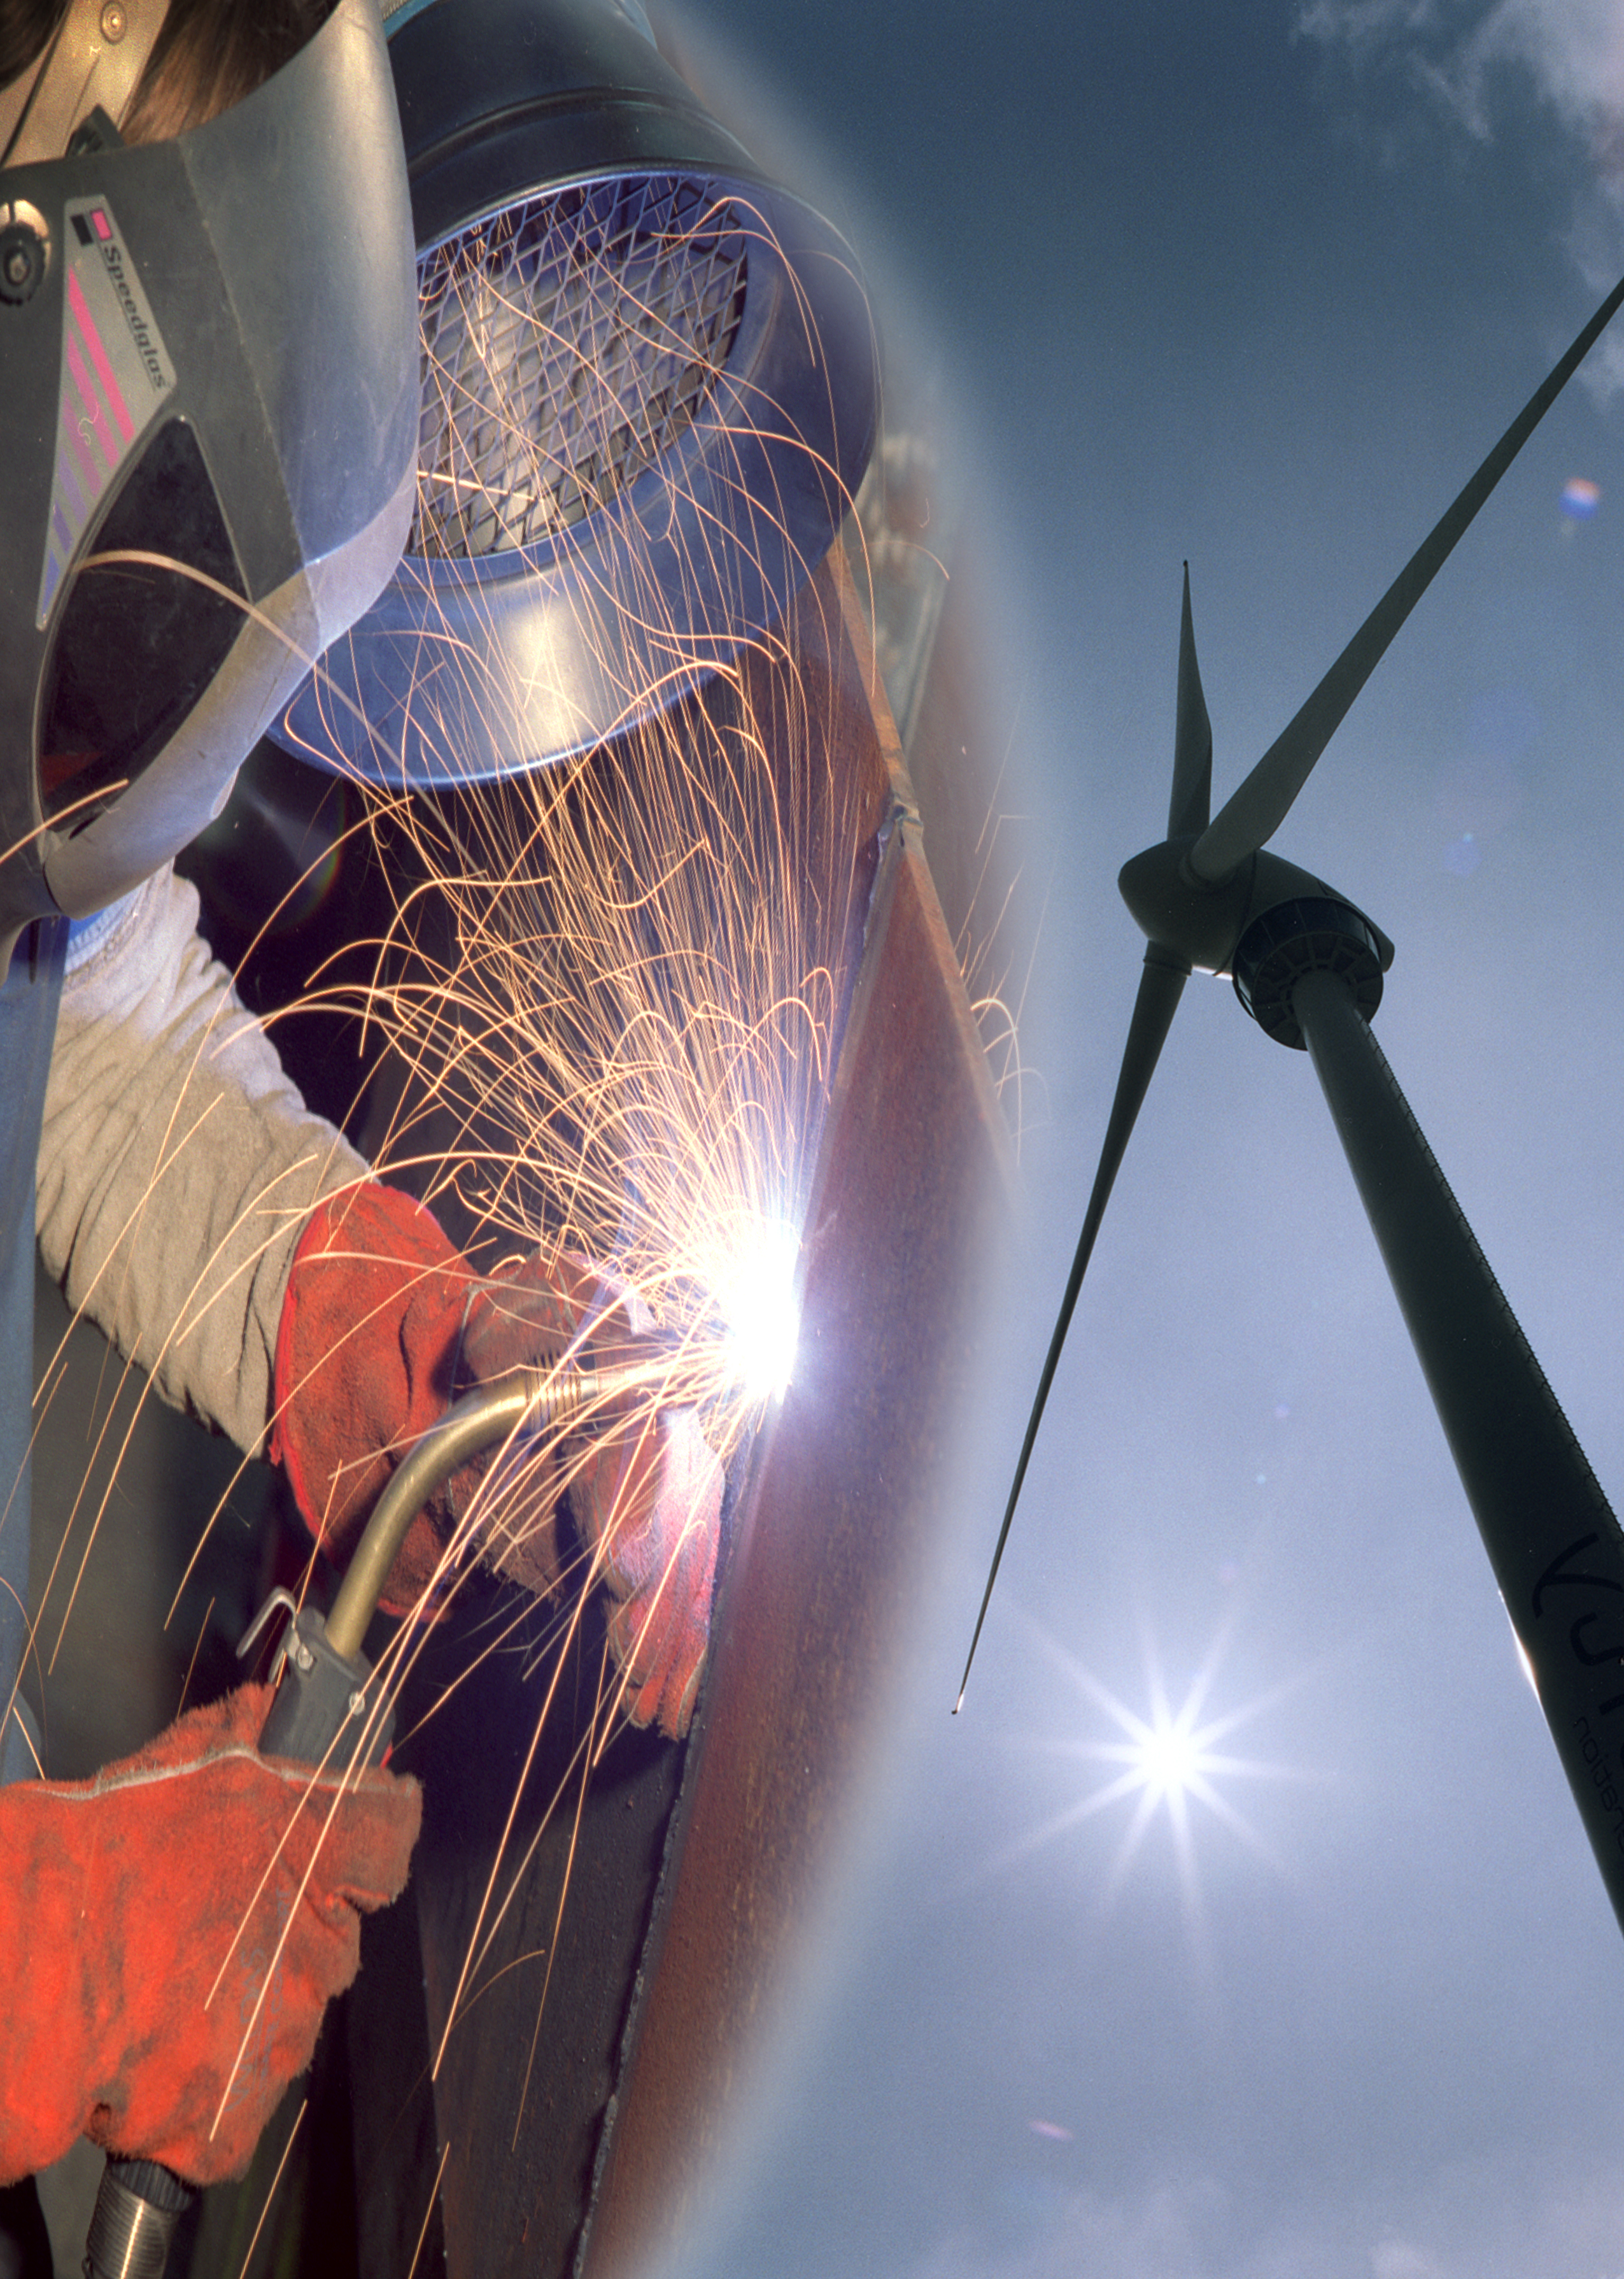 A feasibility study carried out by a team of welding engineers at TWI on behalf of Offshore Group Newcastle (OGN) has examined the potential for volume assembly of a new wind turbine jacket.